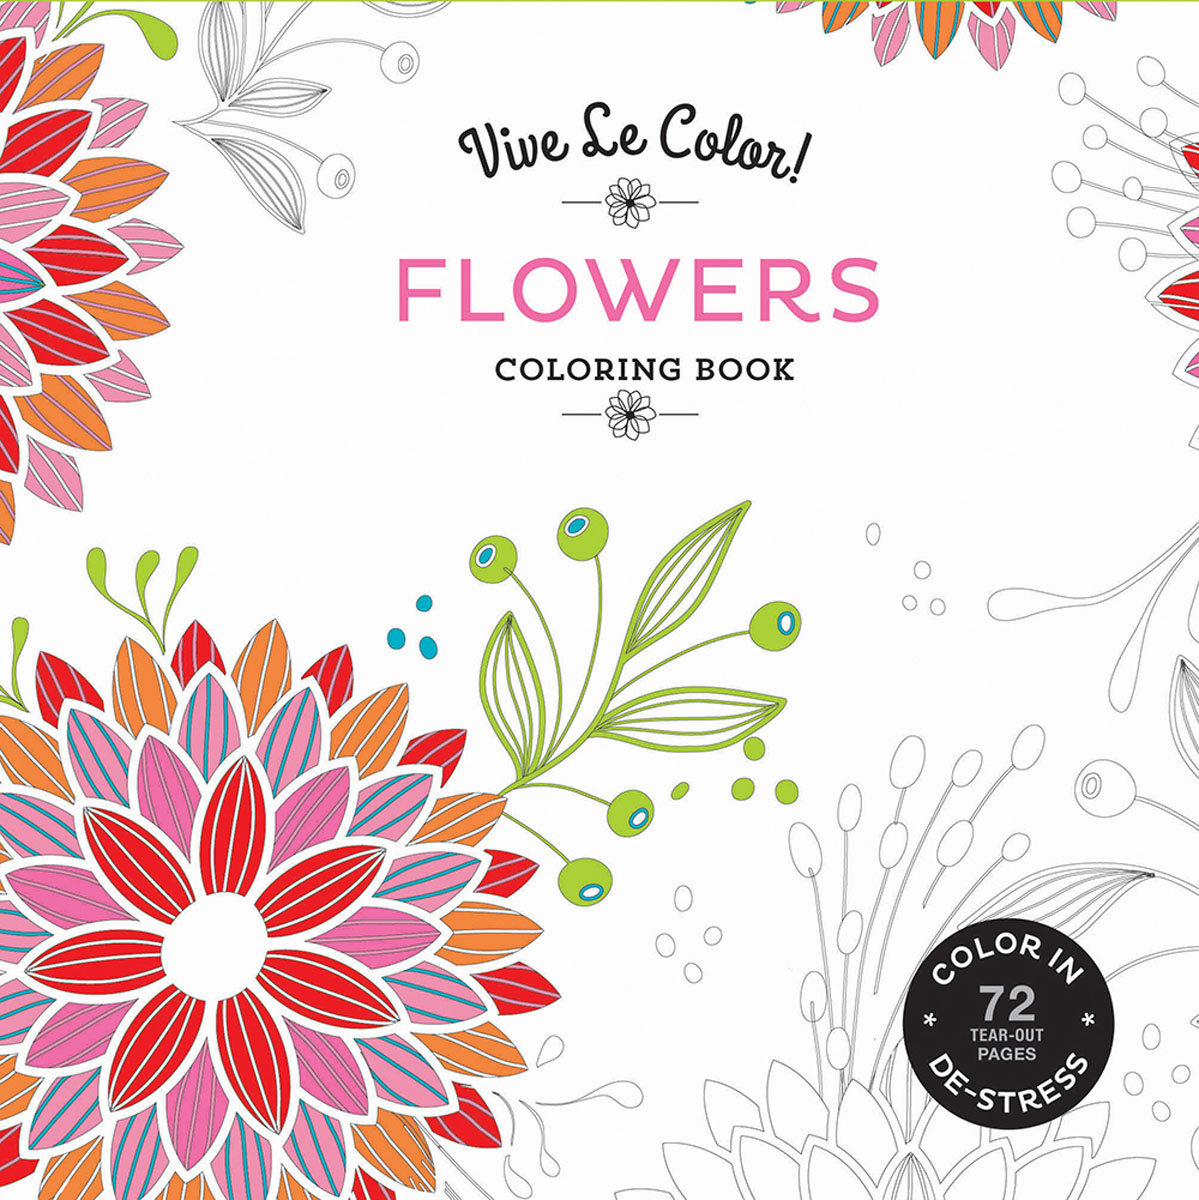 Vive Le Color! Flowers (Adult Coloring Book) fantasy dream painted series of vines flowers for adult children antistress art drawing painting secret garden colouring book